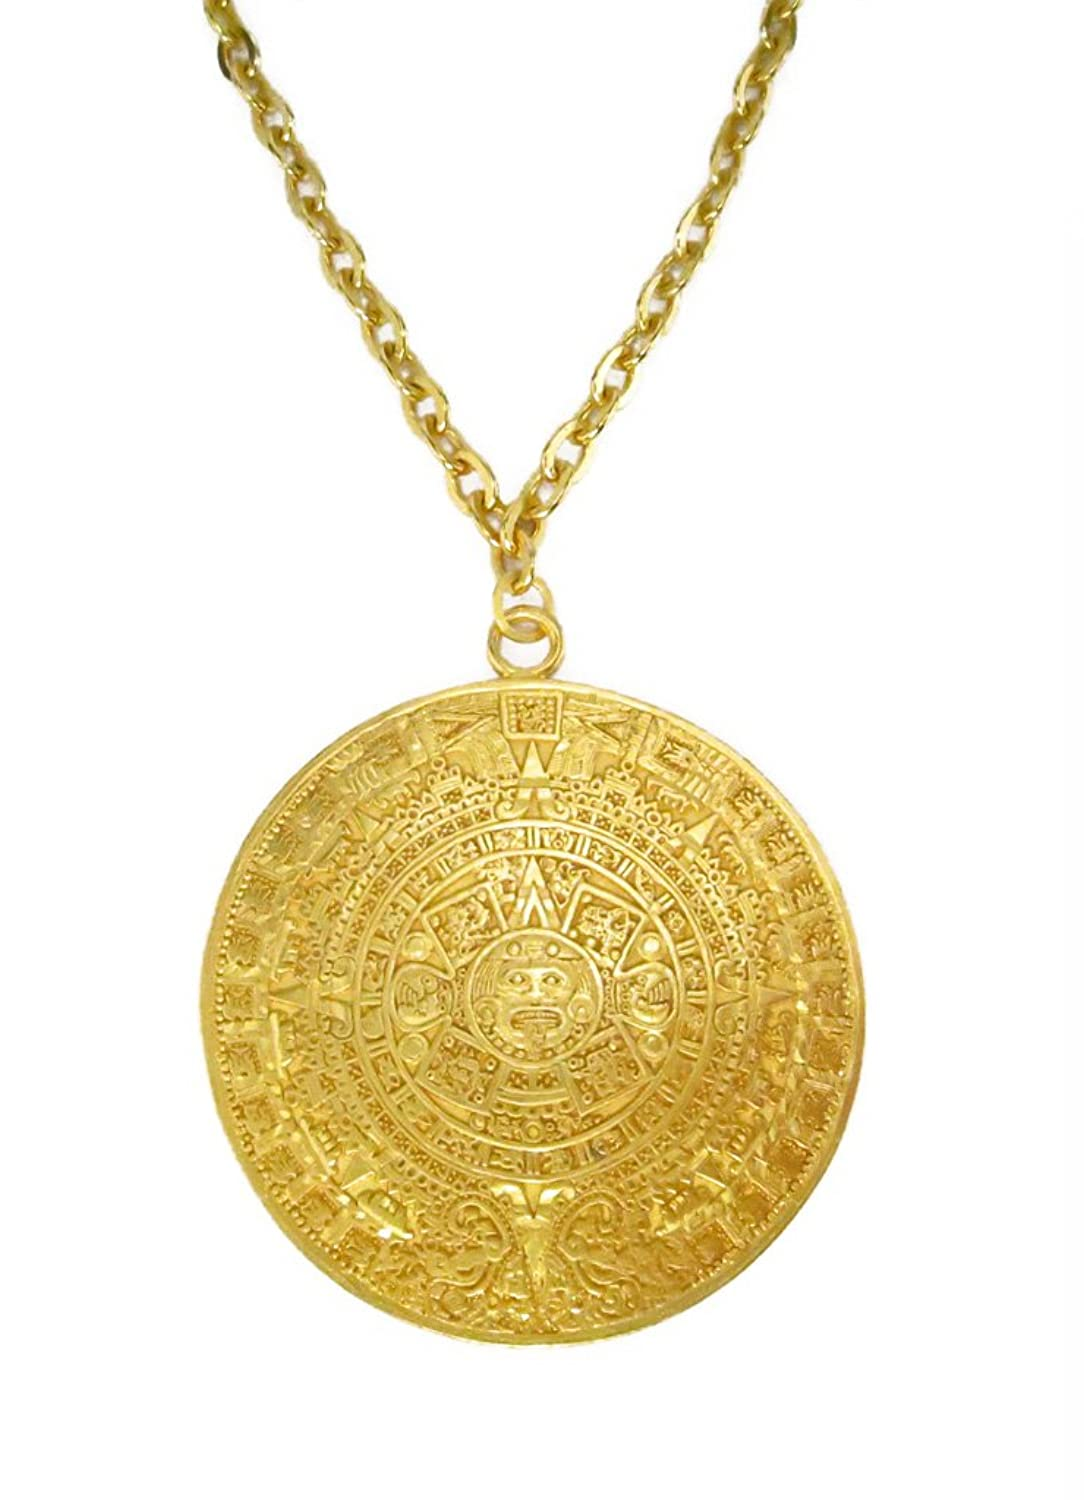 Amazon 24k gold plated 2 aztec calendar 47 mm thick 22 amazon 24k gold plated 2 aztec calendar 47 mm thick 22 cable chain necklace jewelry mozeypictures Images